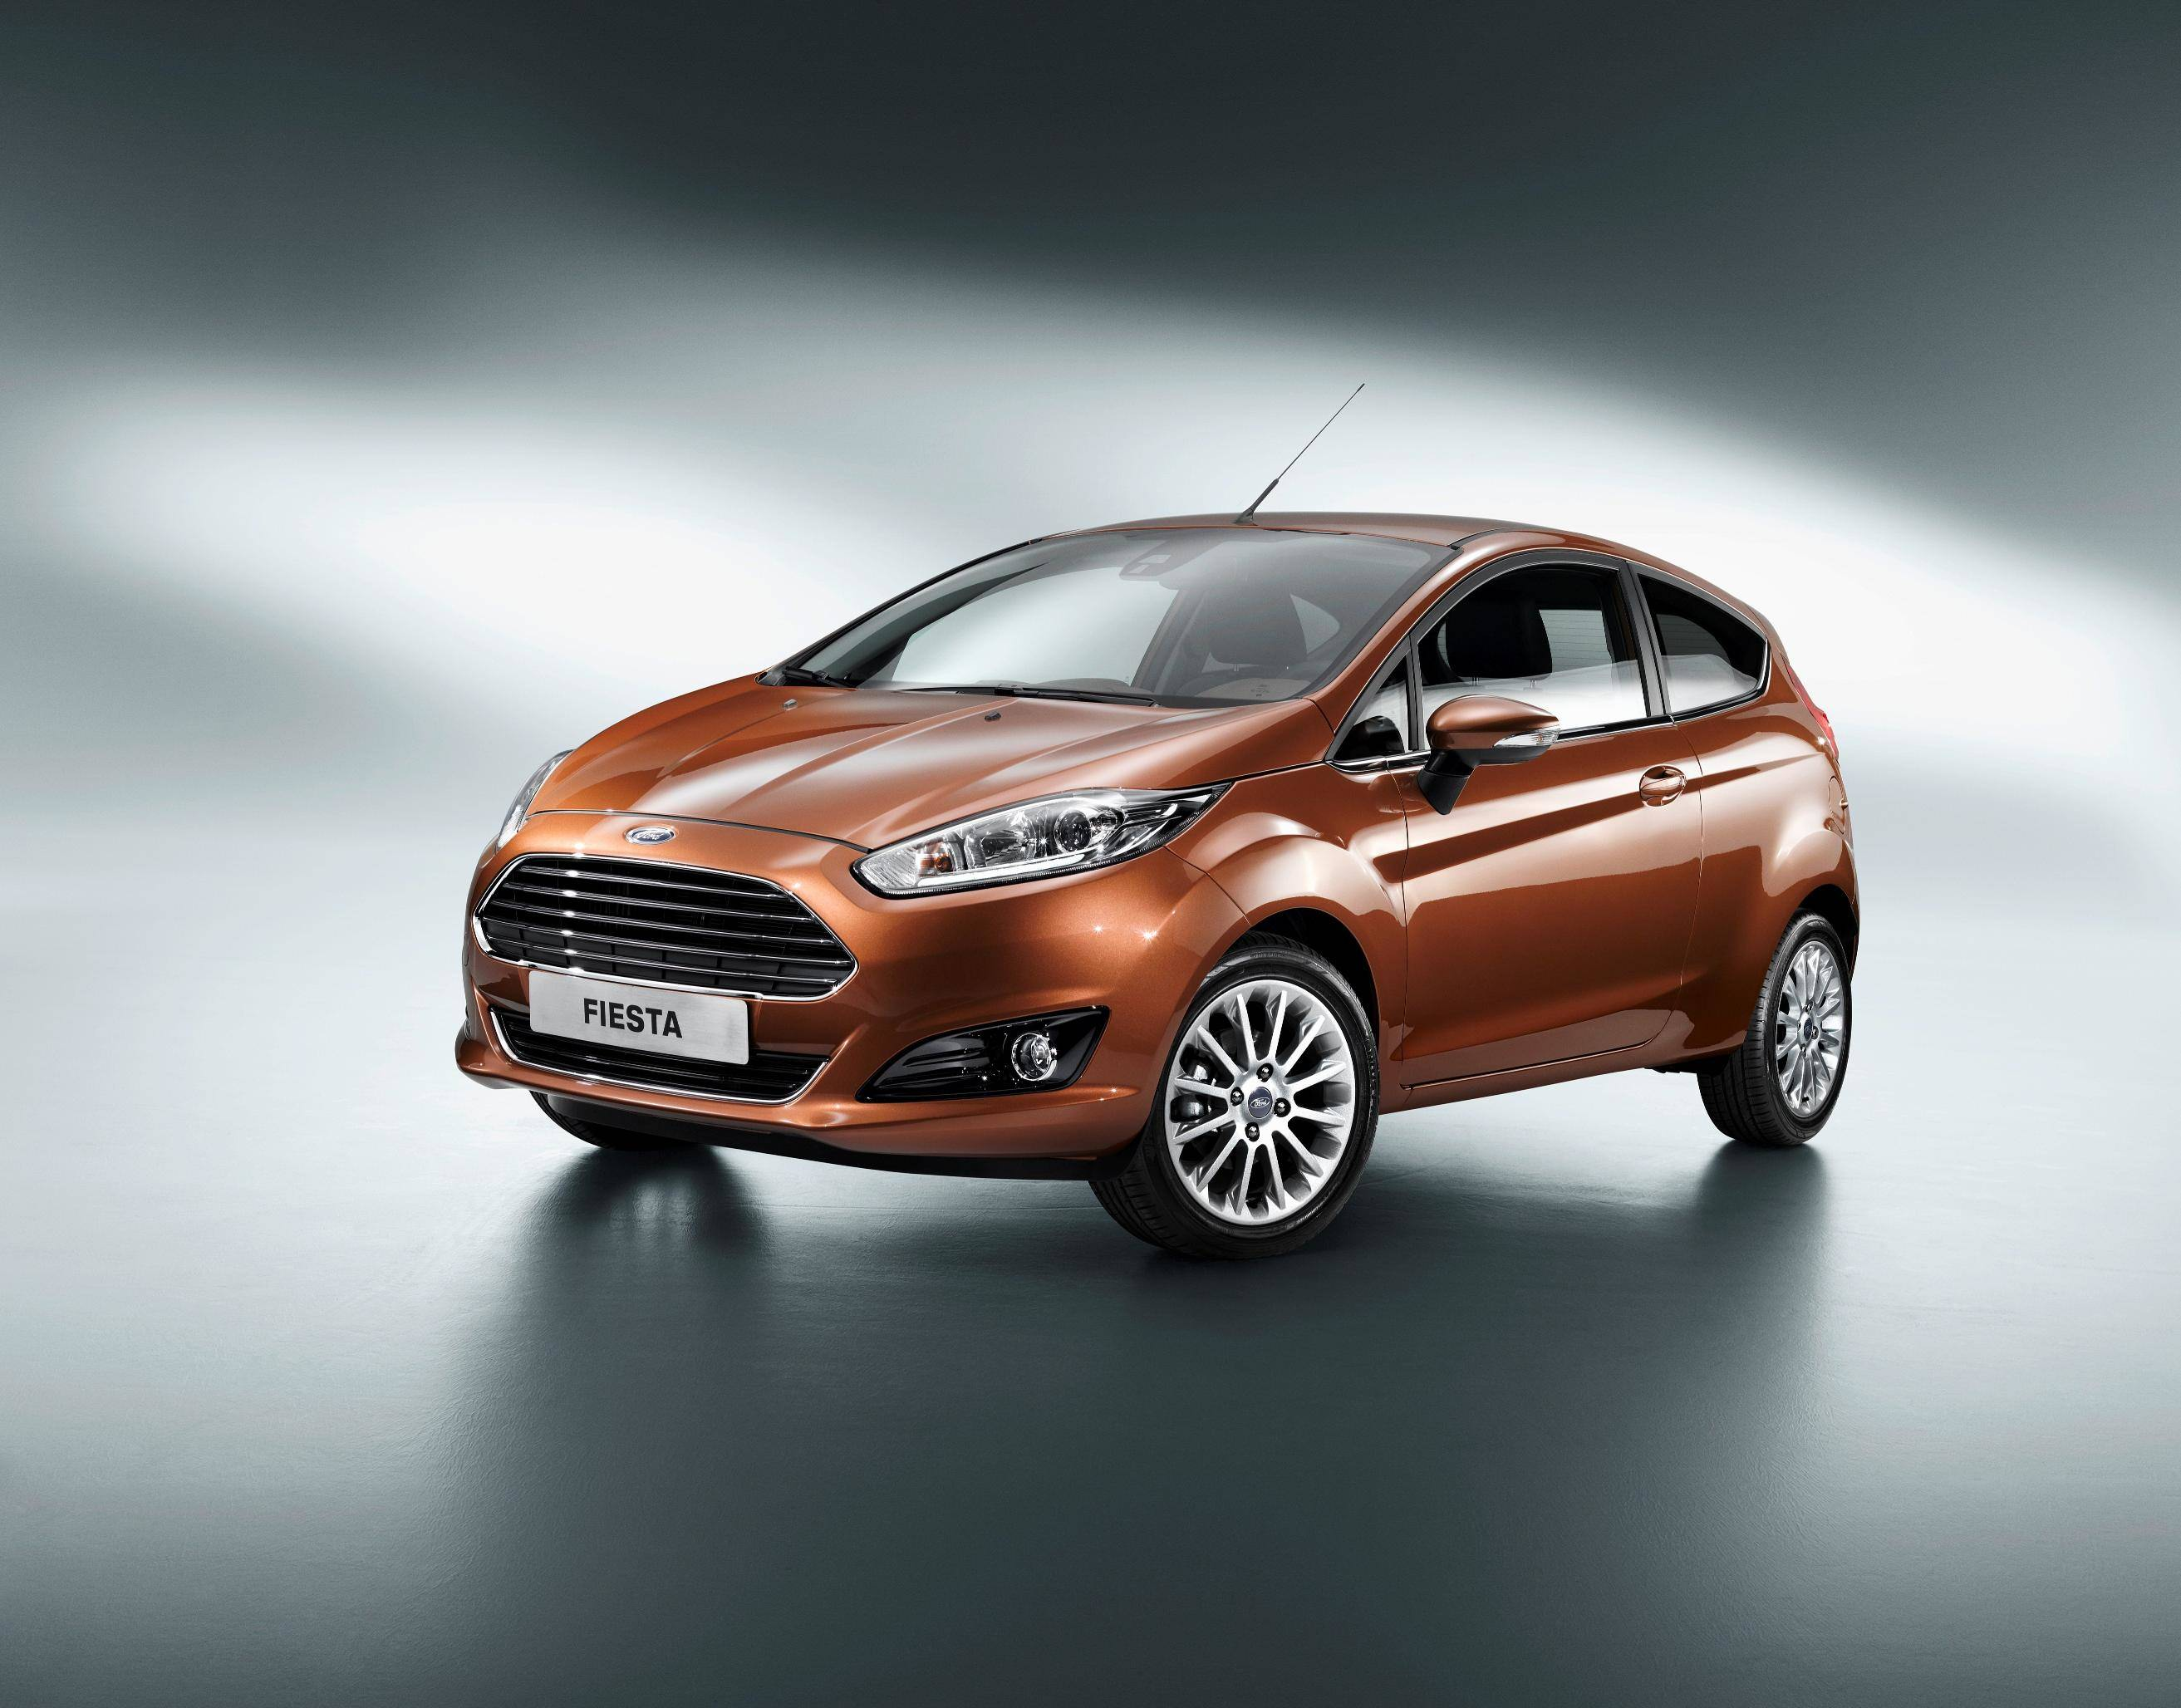 image of a ford fiesta car exterior